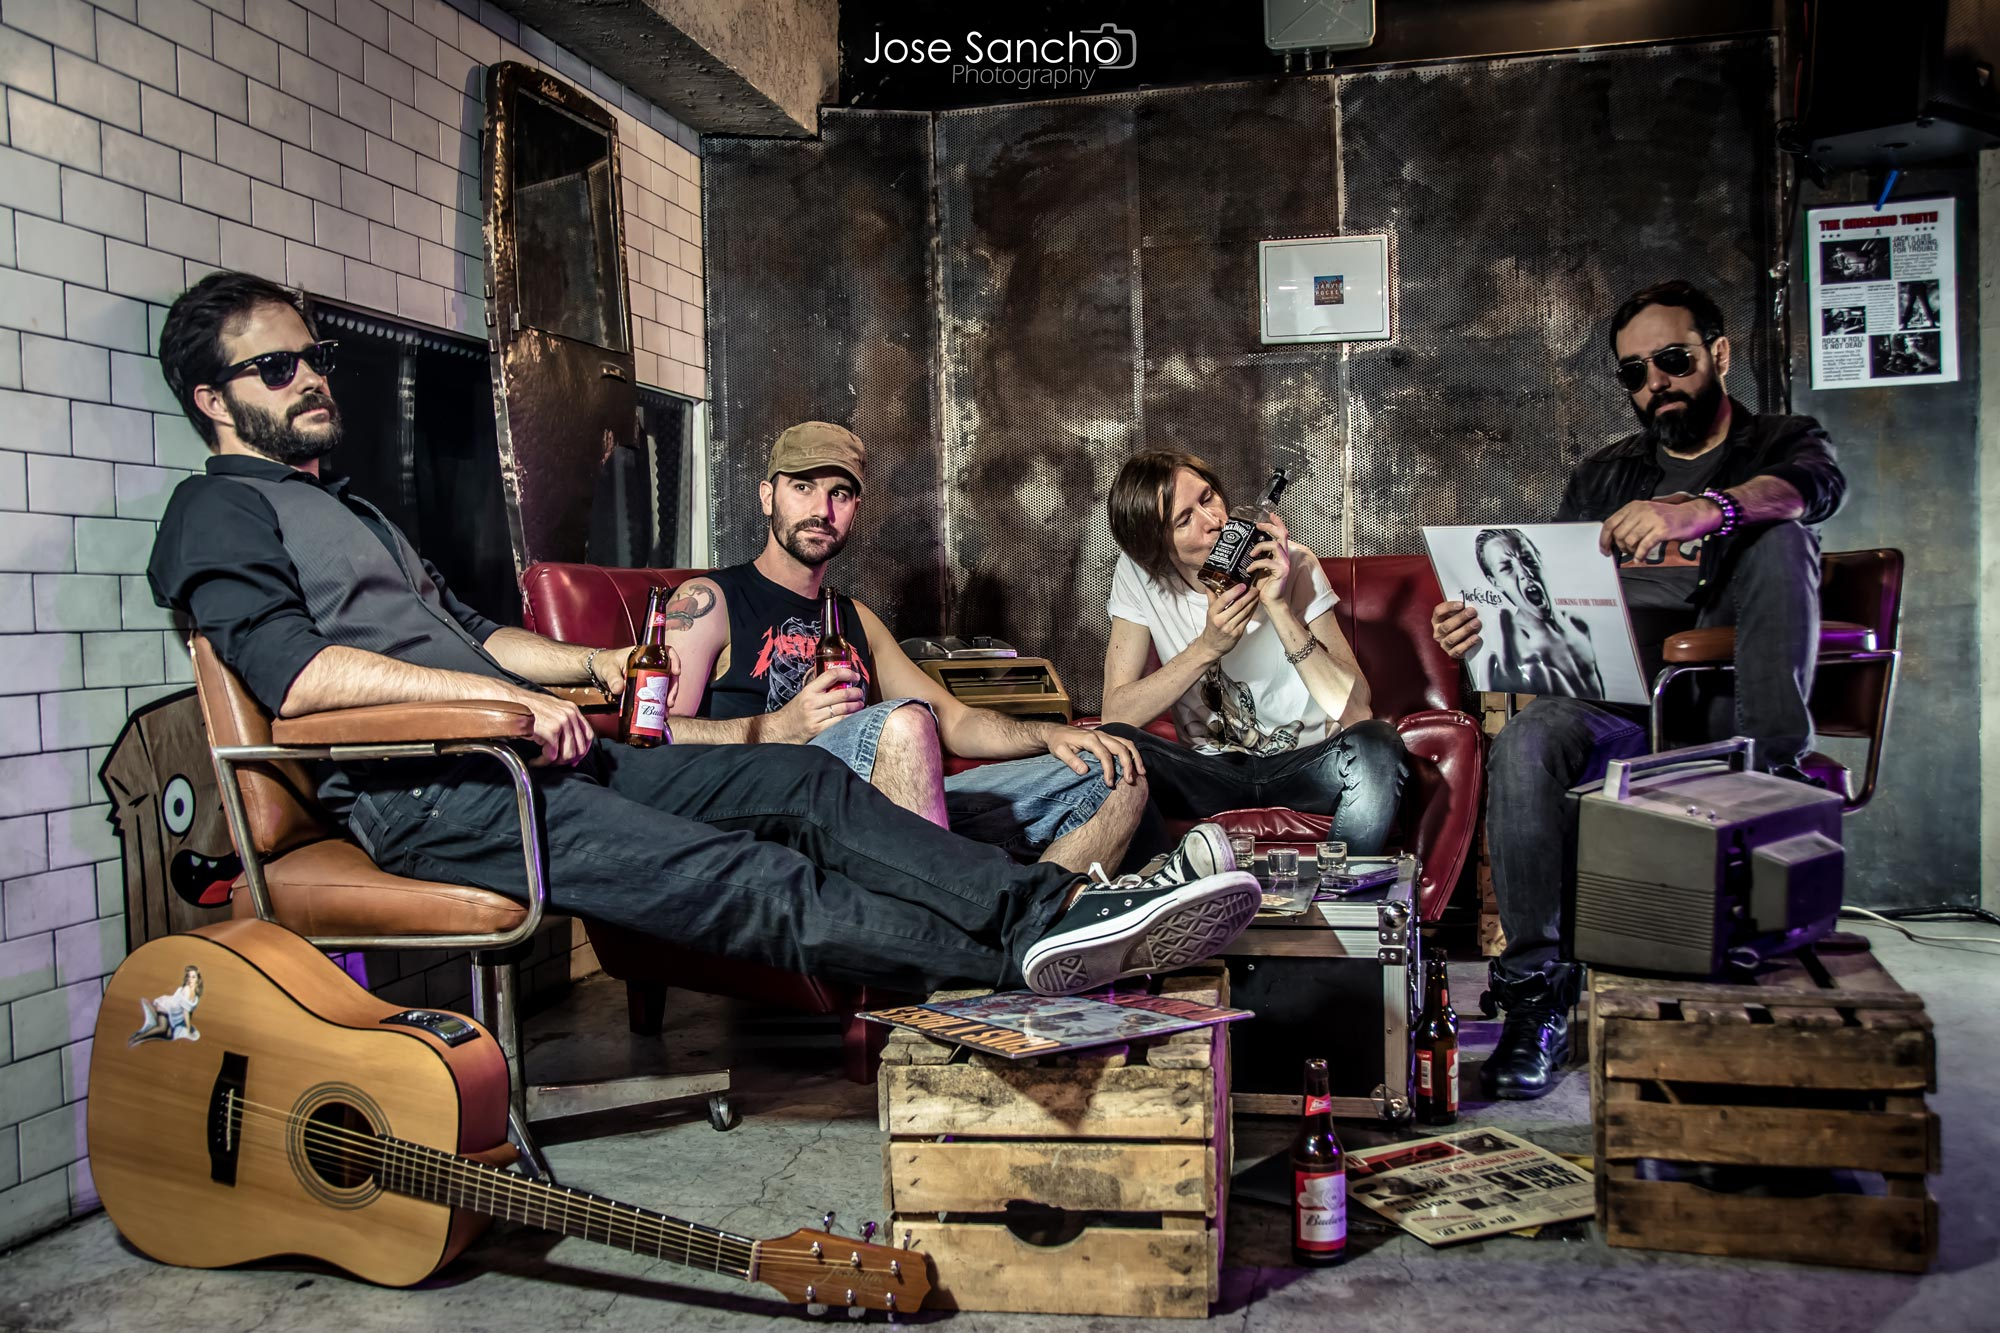 Jack n Lies - Portada - Jose Sancho Photography